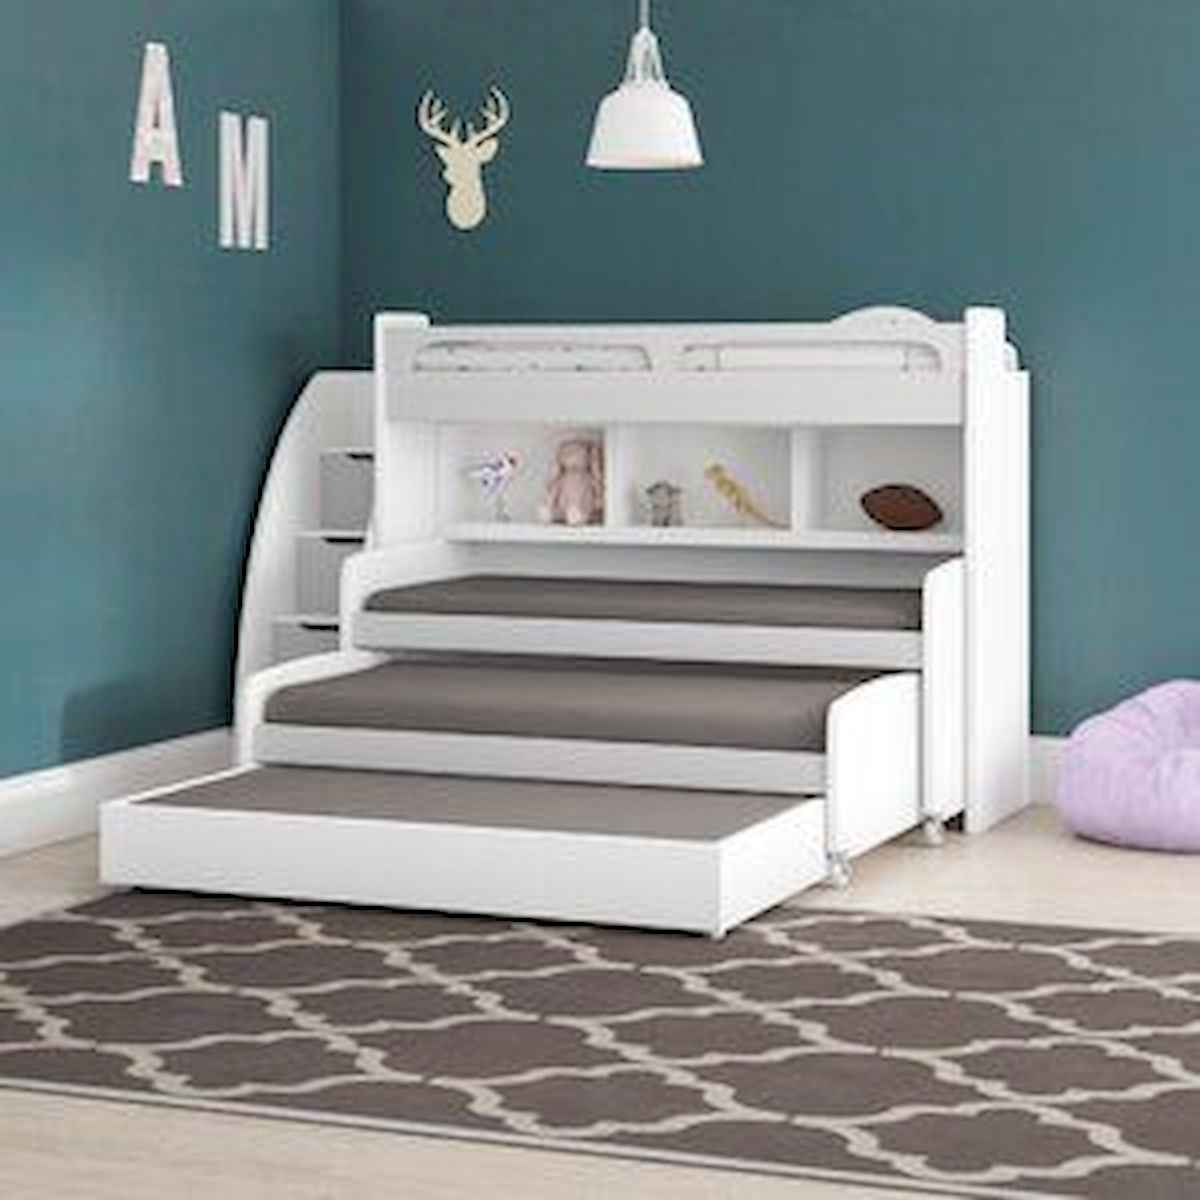 70 Favorite Diy Projects Furniture Projects Bedroom Design